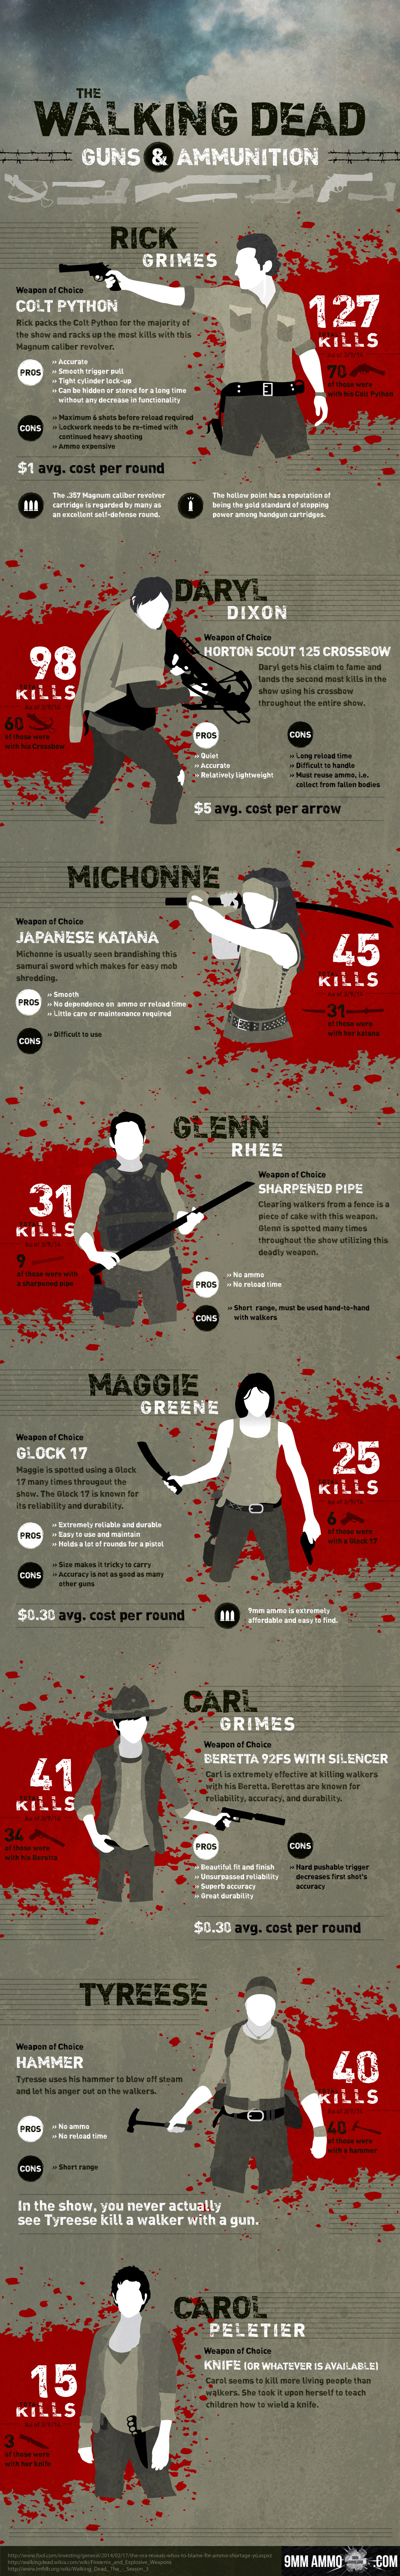 Walking-Dead-weapons-and-ammunition.jpg